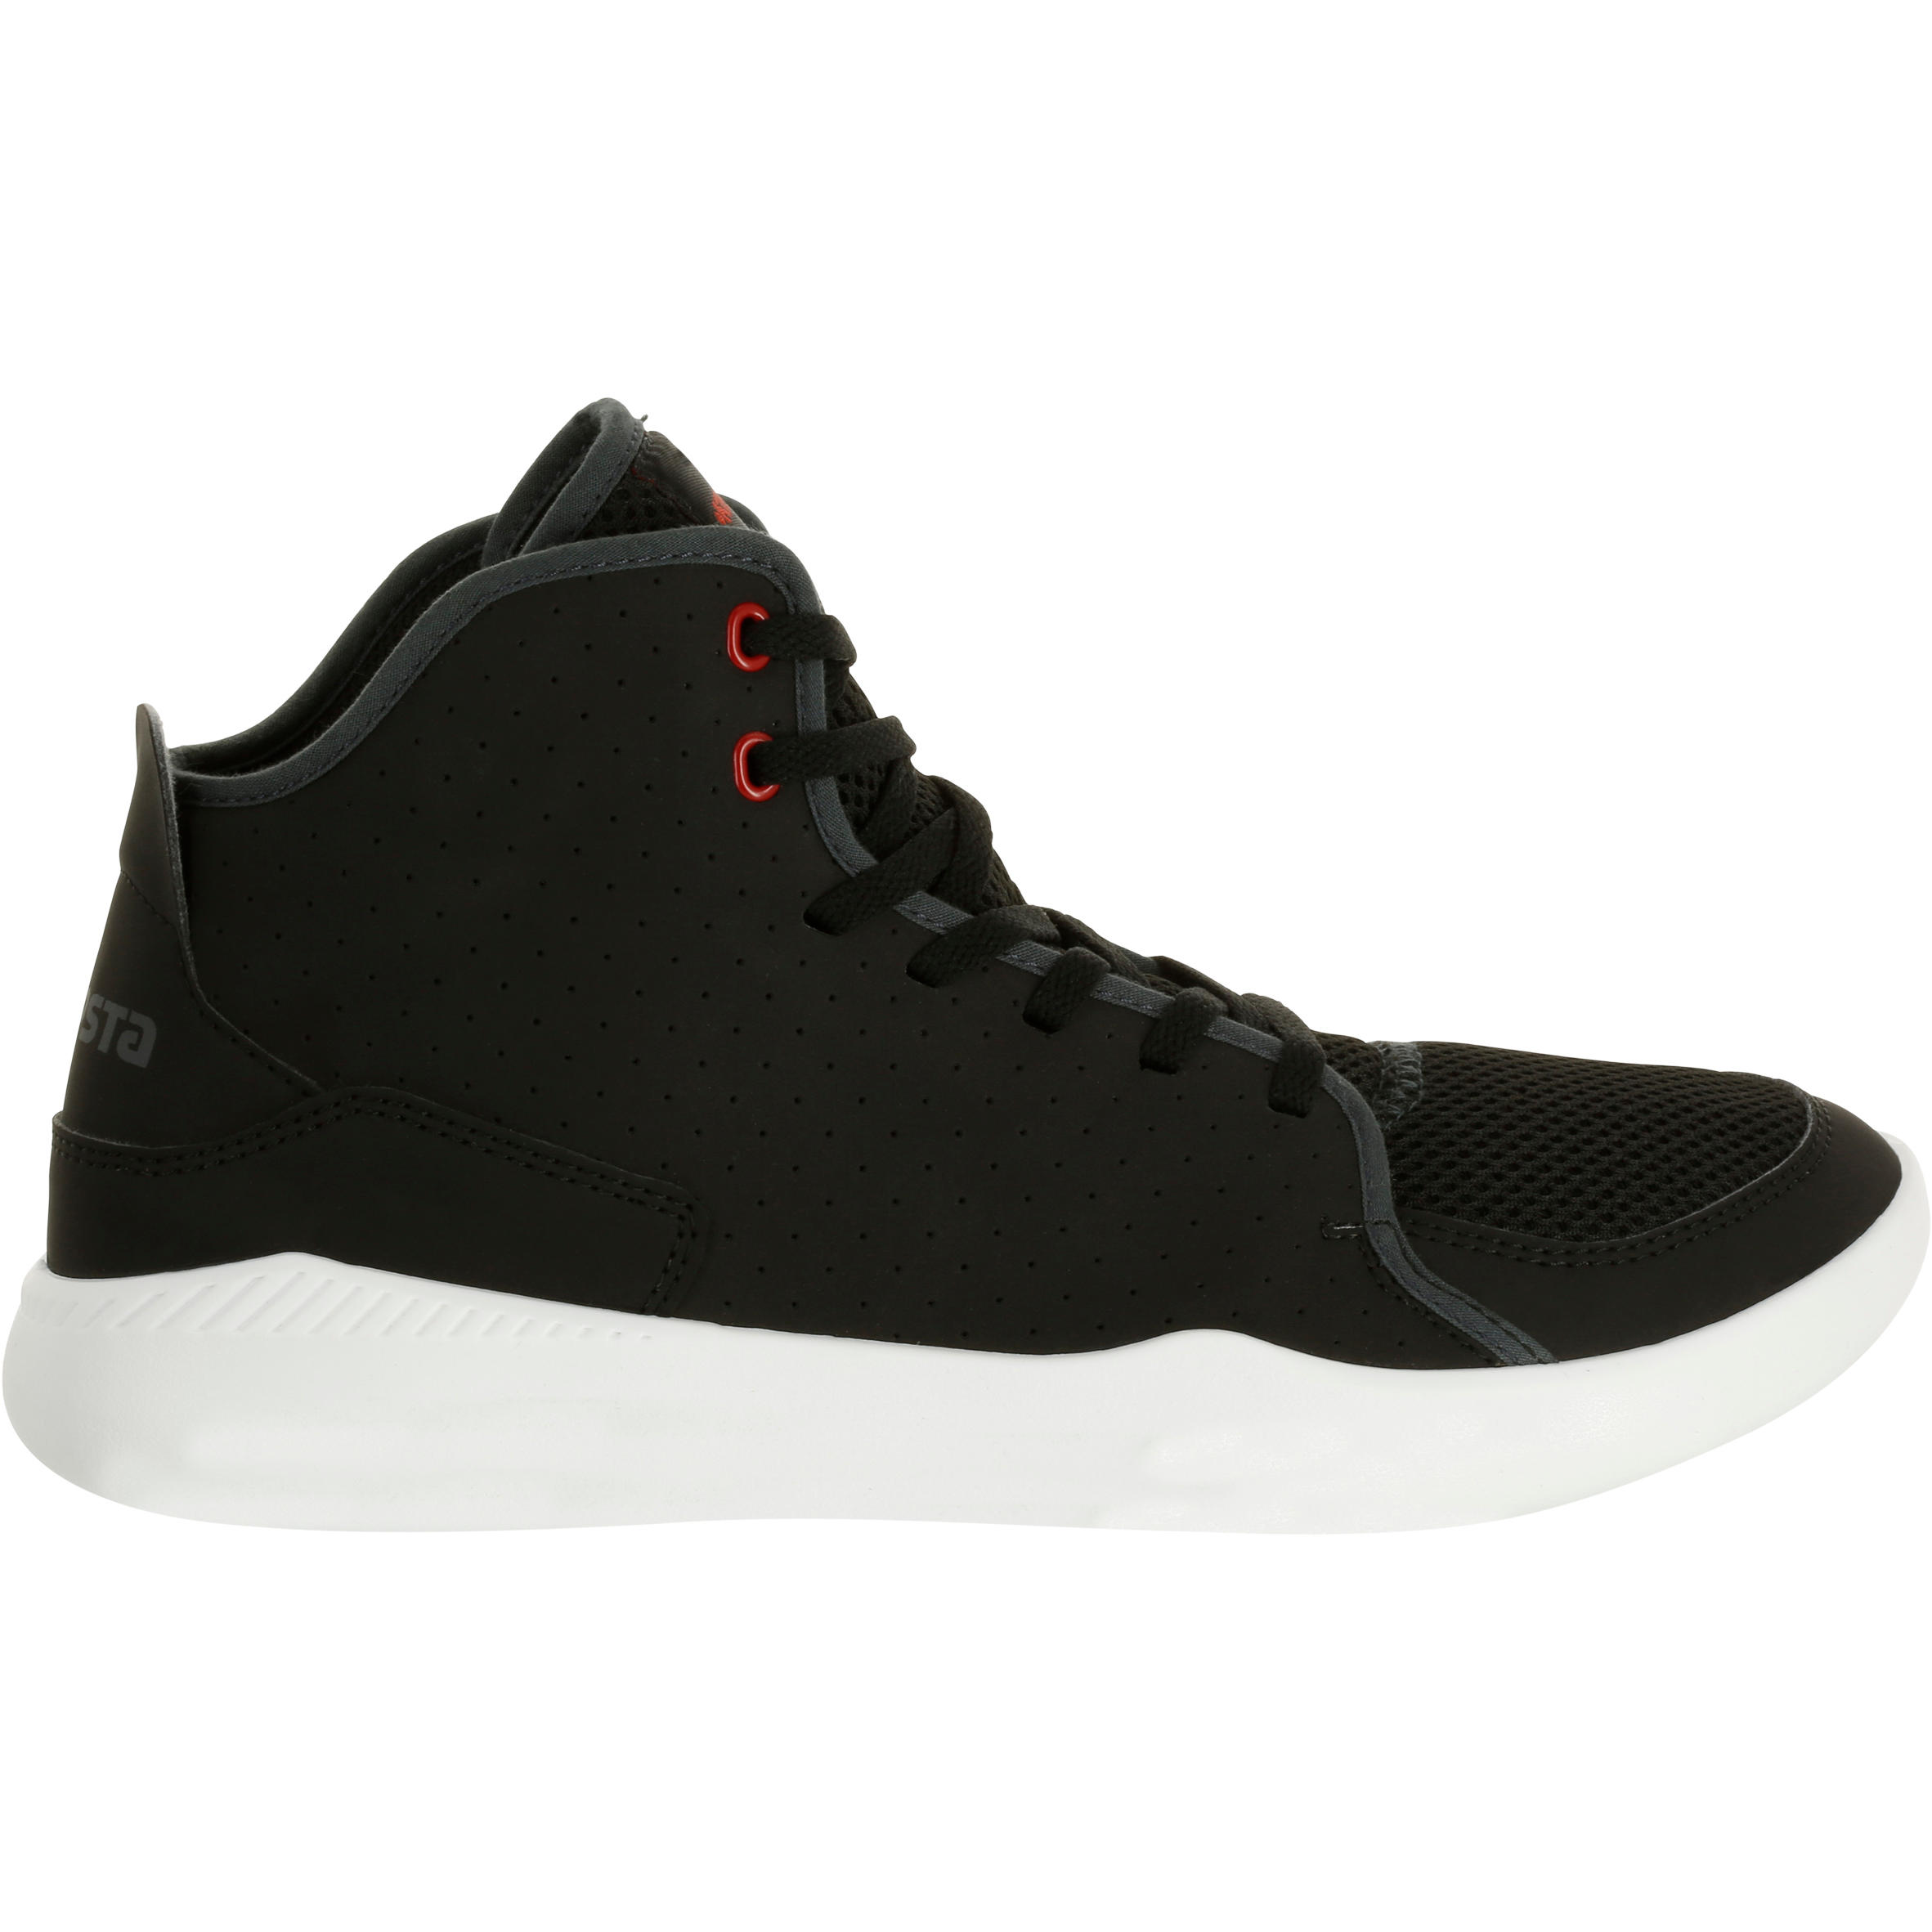 Shield 100 Unisex Beginner Basketball Shoes - Black